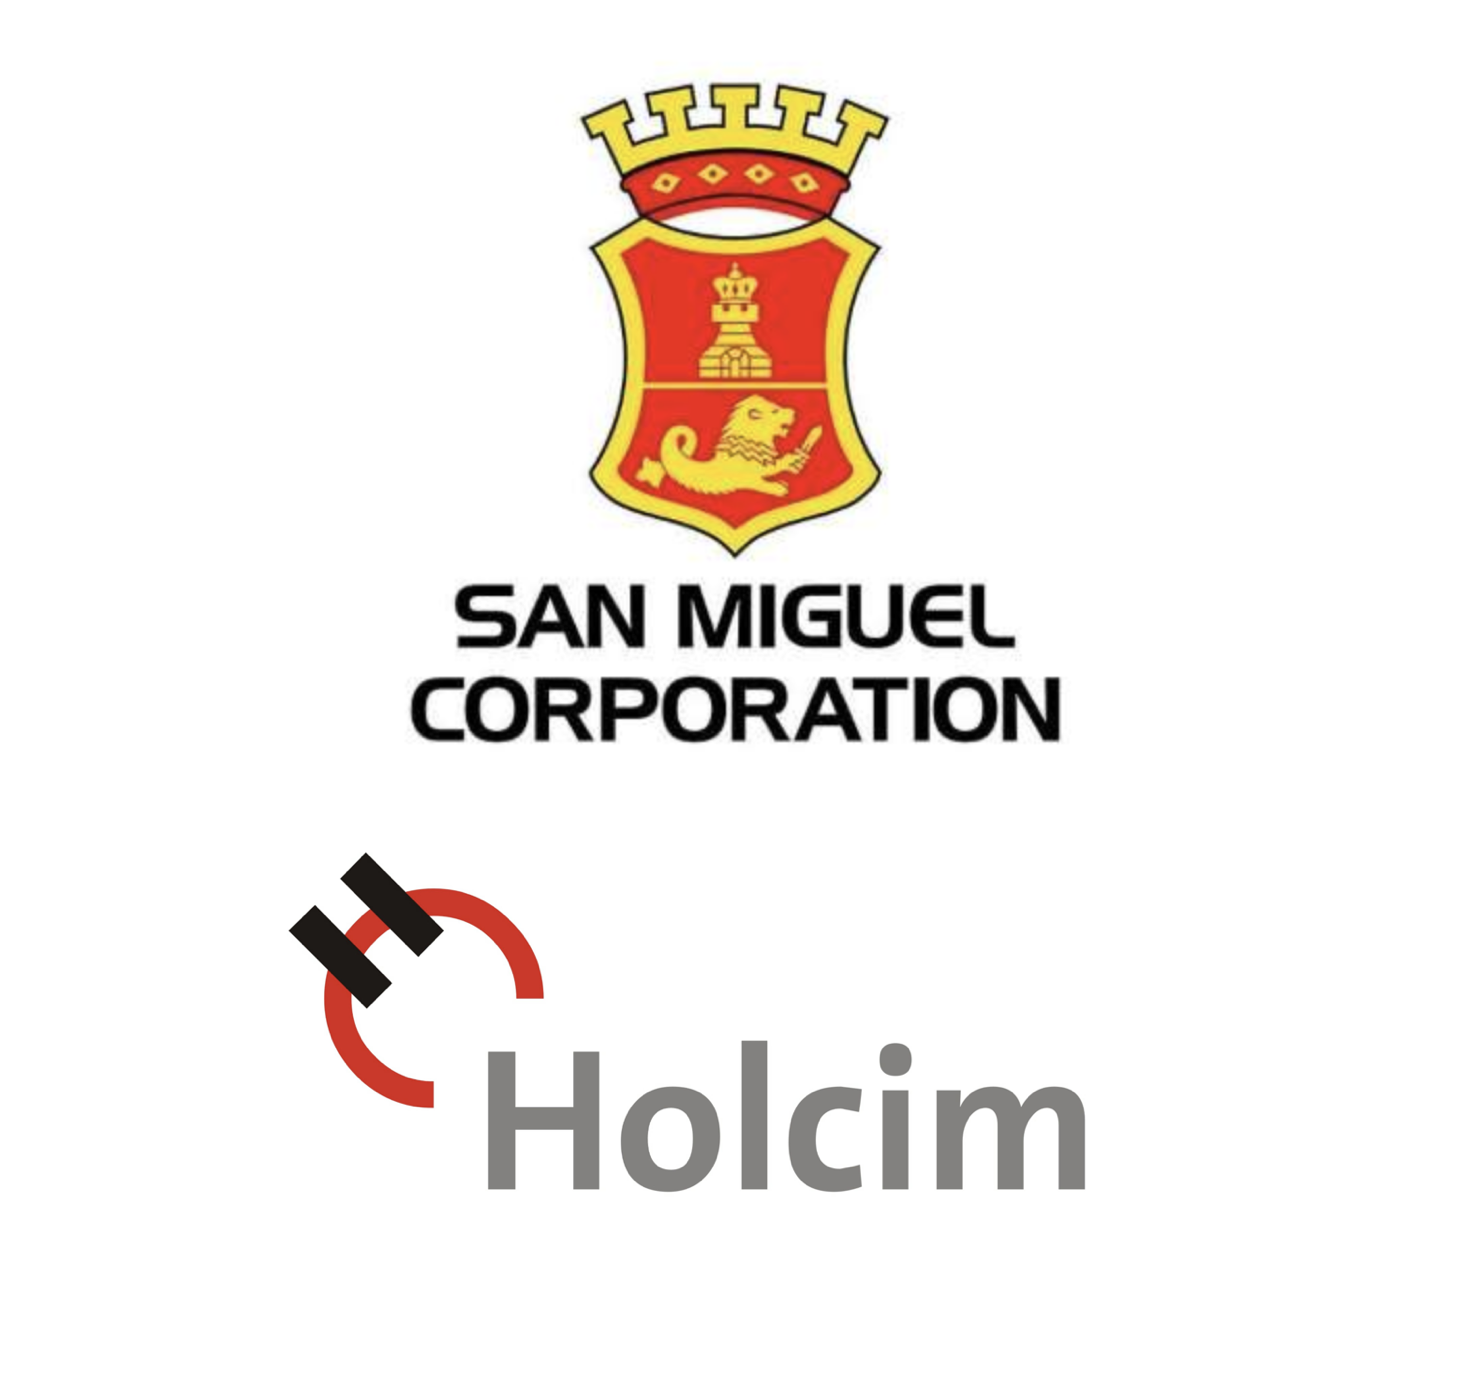 San Miguel Corporation acquires Holcim Cement Philippines, DTI sees positive development in the acquisition